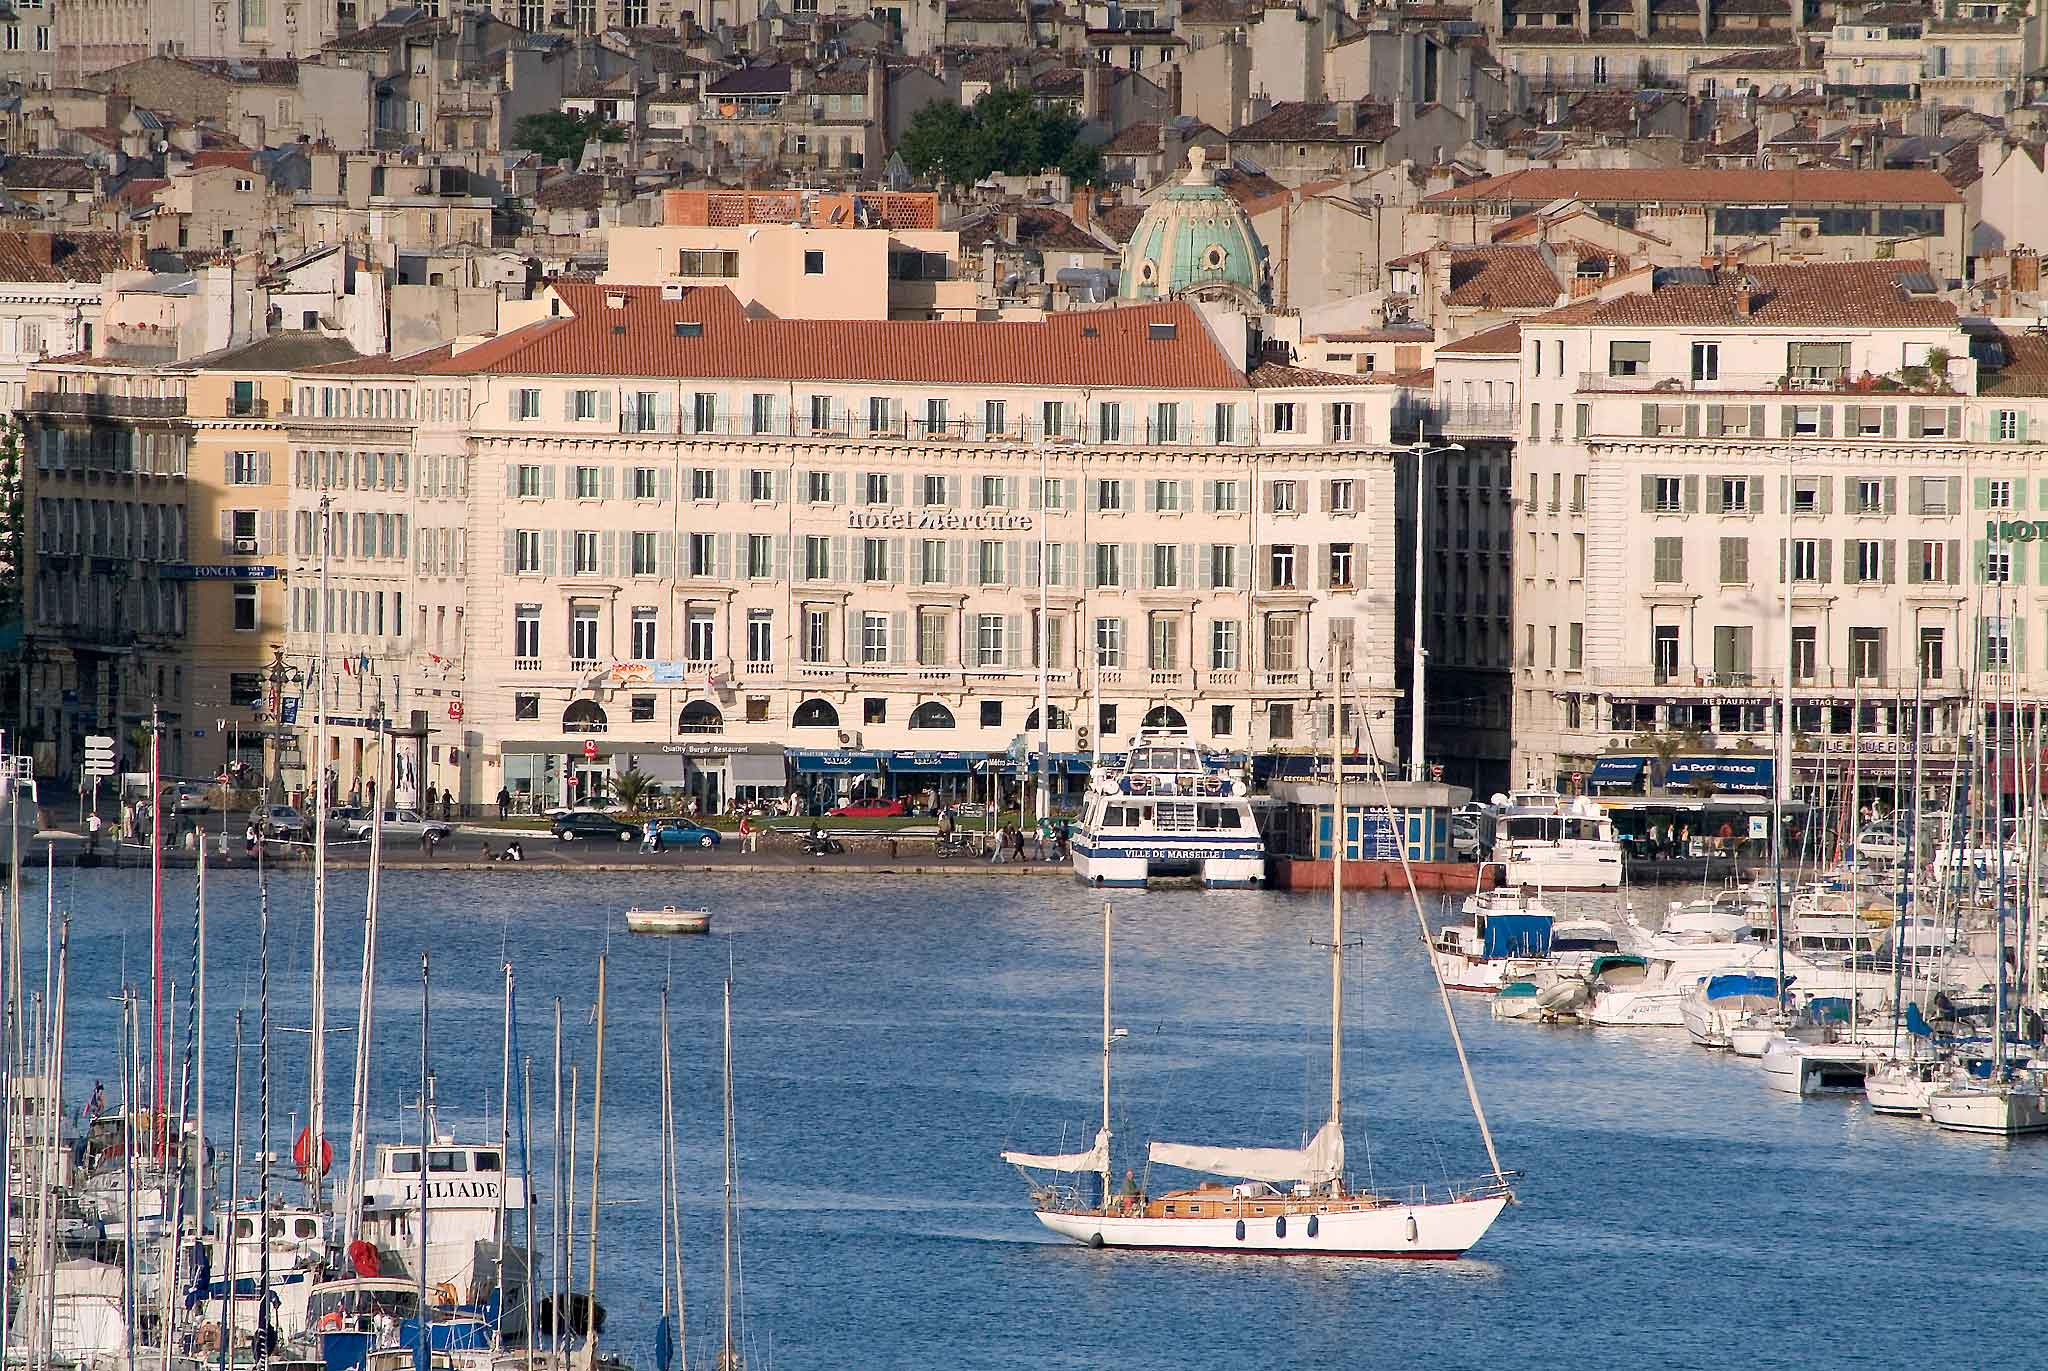 H tel marseille grand hotel beauvau marseille vieux port mgallery by sofitel - New hotel vieux port marseille booking com ...